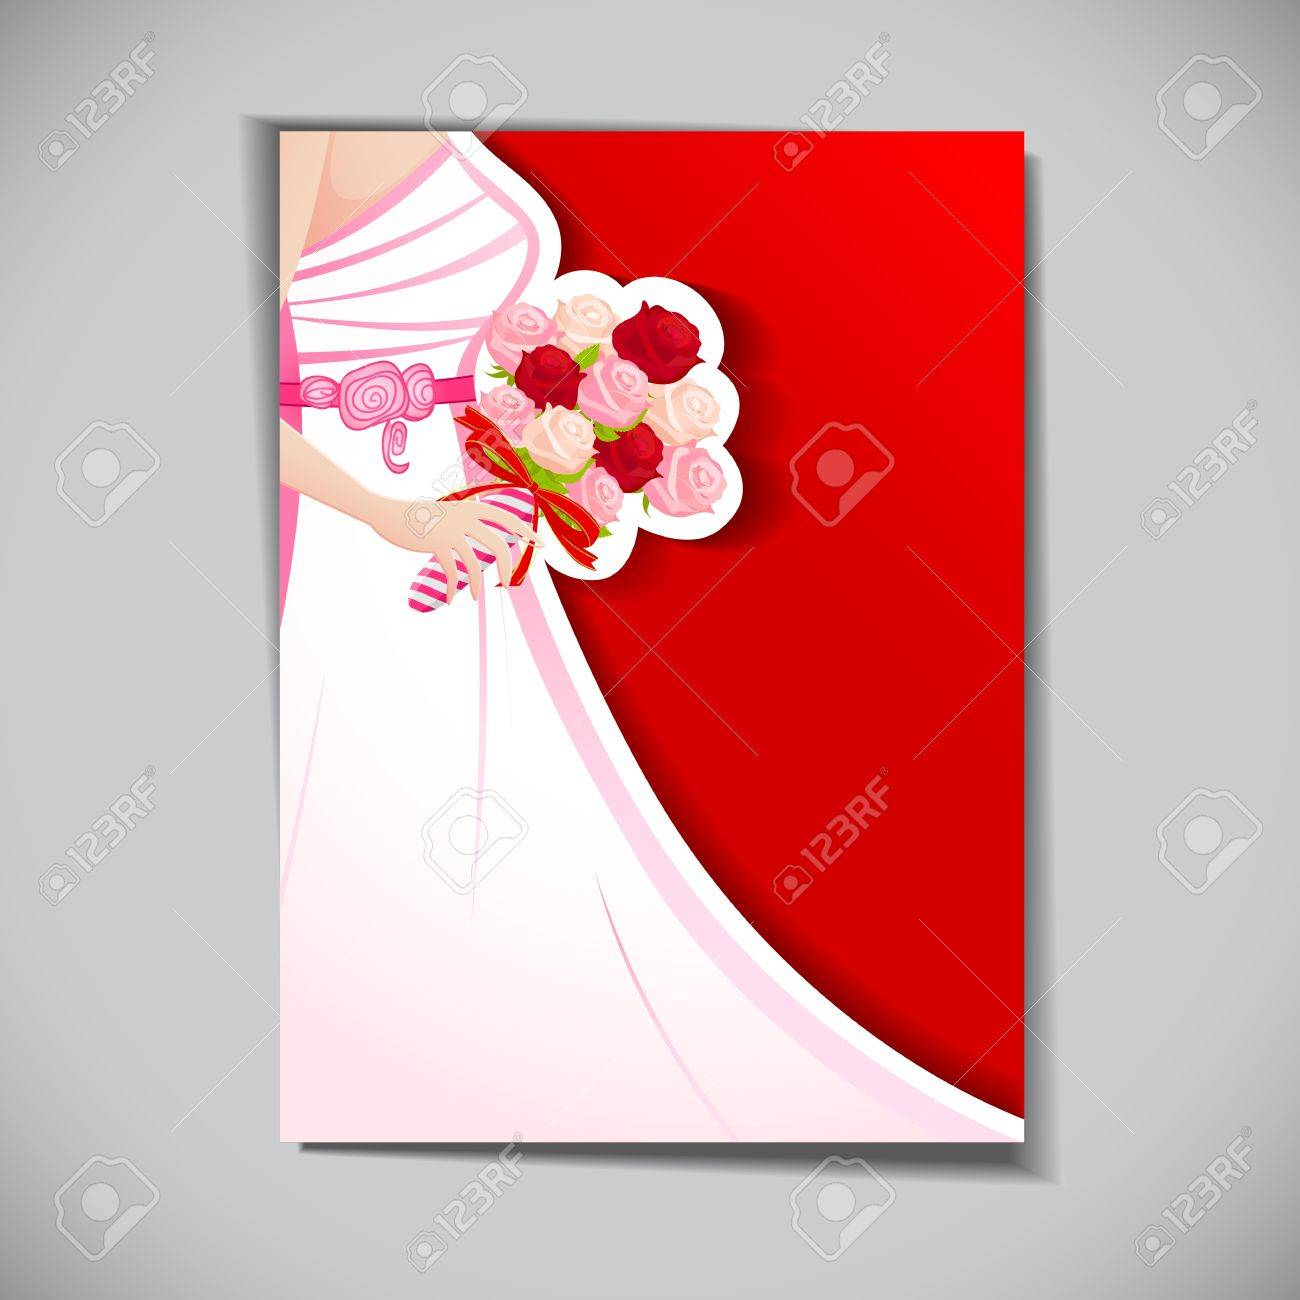 illustration of bride with rose bouquet in wedding card Stock Vector - 12763195